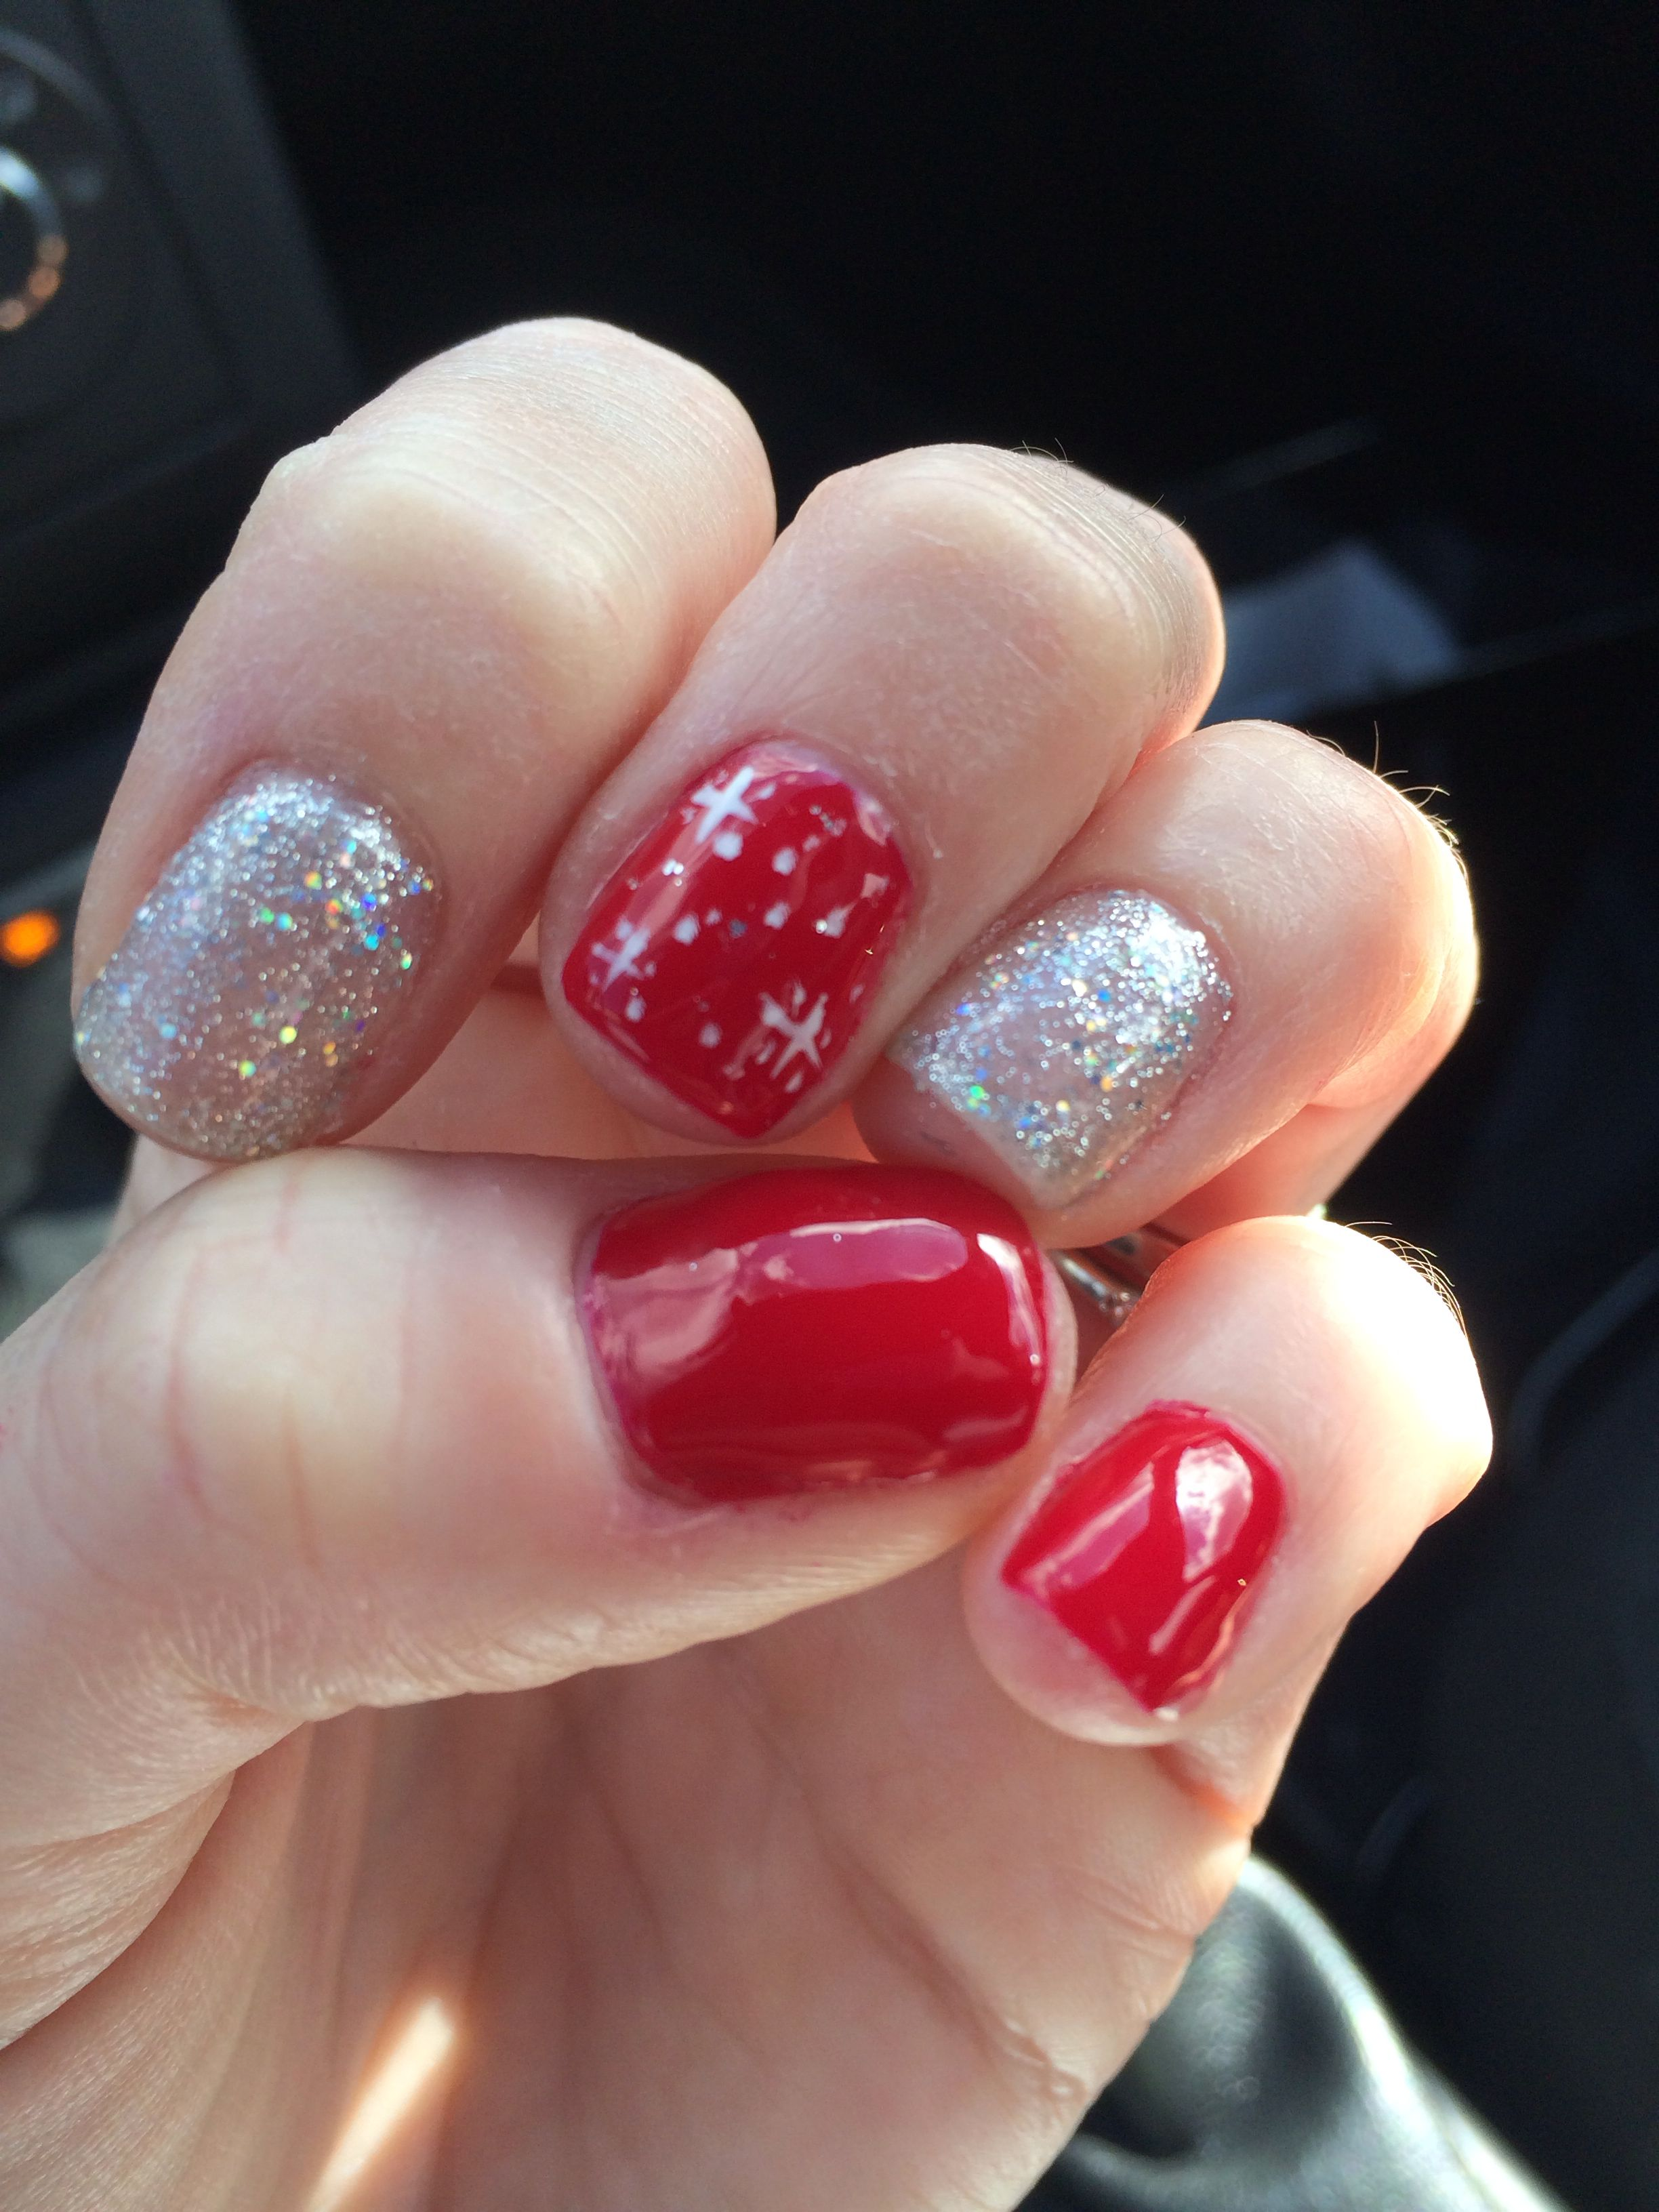 Christmas Nails Red Glitter Silver White Design Nails Gel Polish Shellac Manicure Feminine F Nail Designs Glitter Christmas Nails Christmas Gel Nails